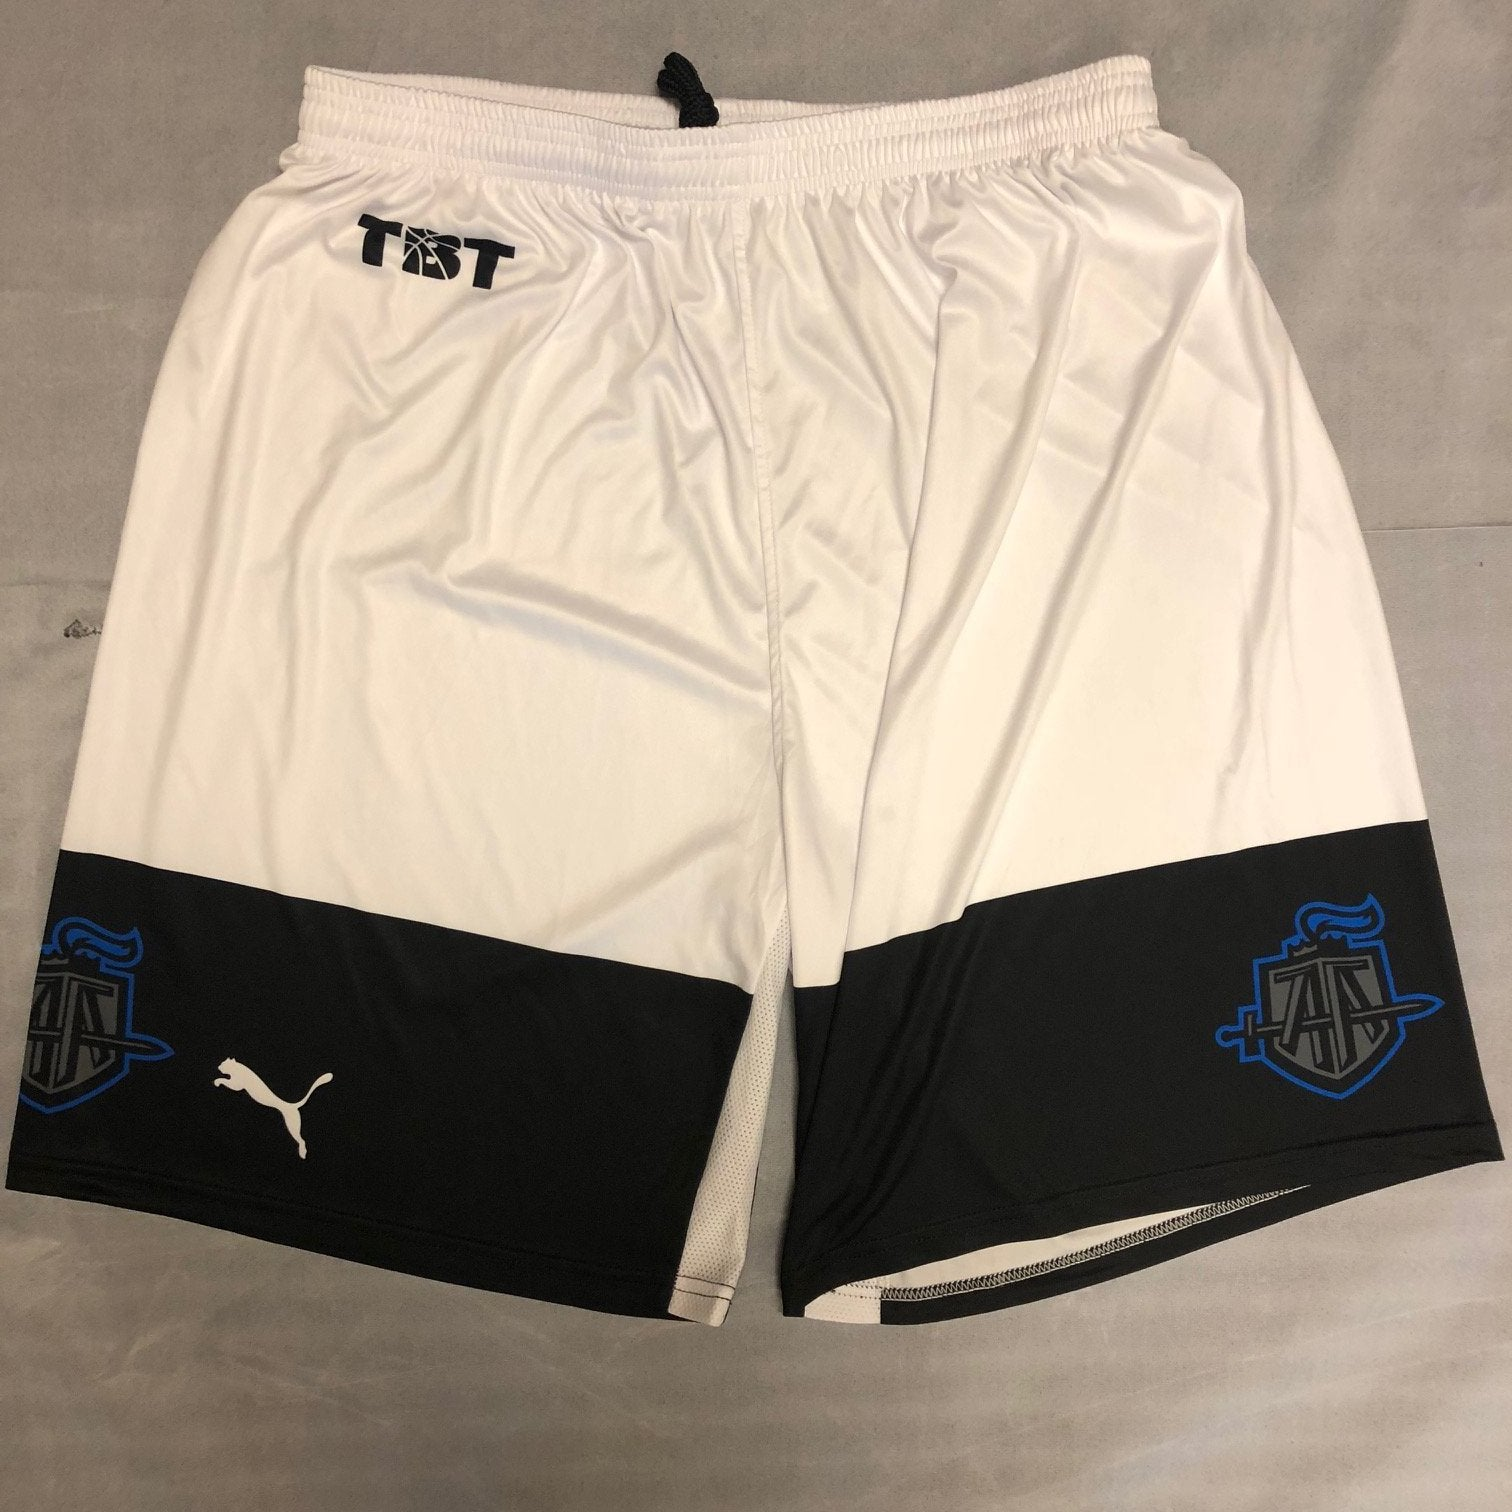 Armored Athlete - 2018 Official Team Shorts